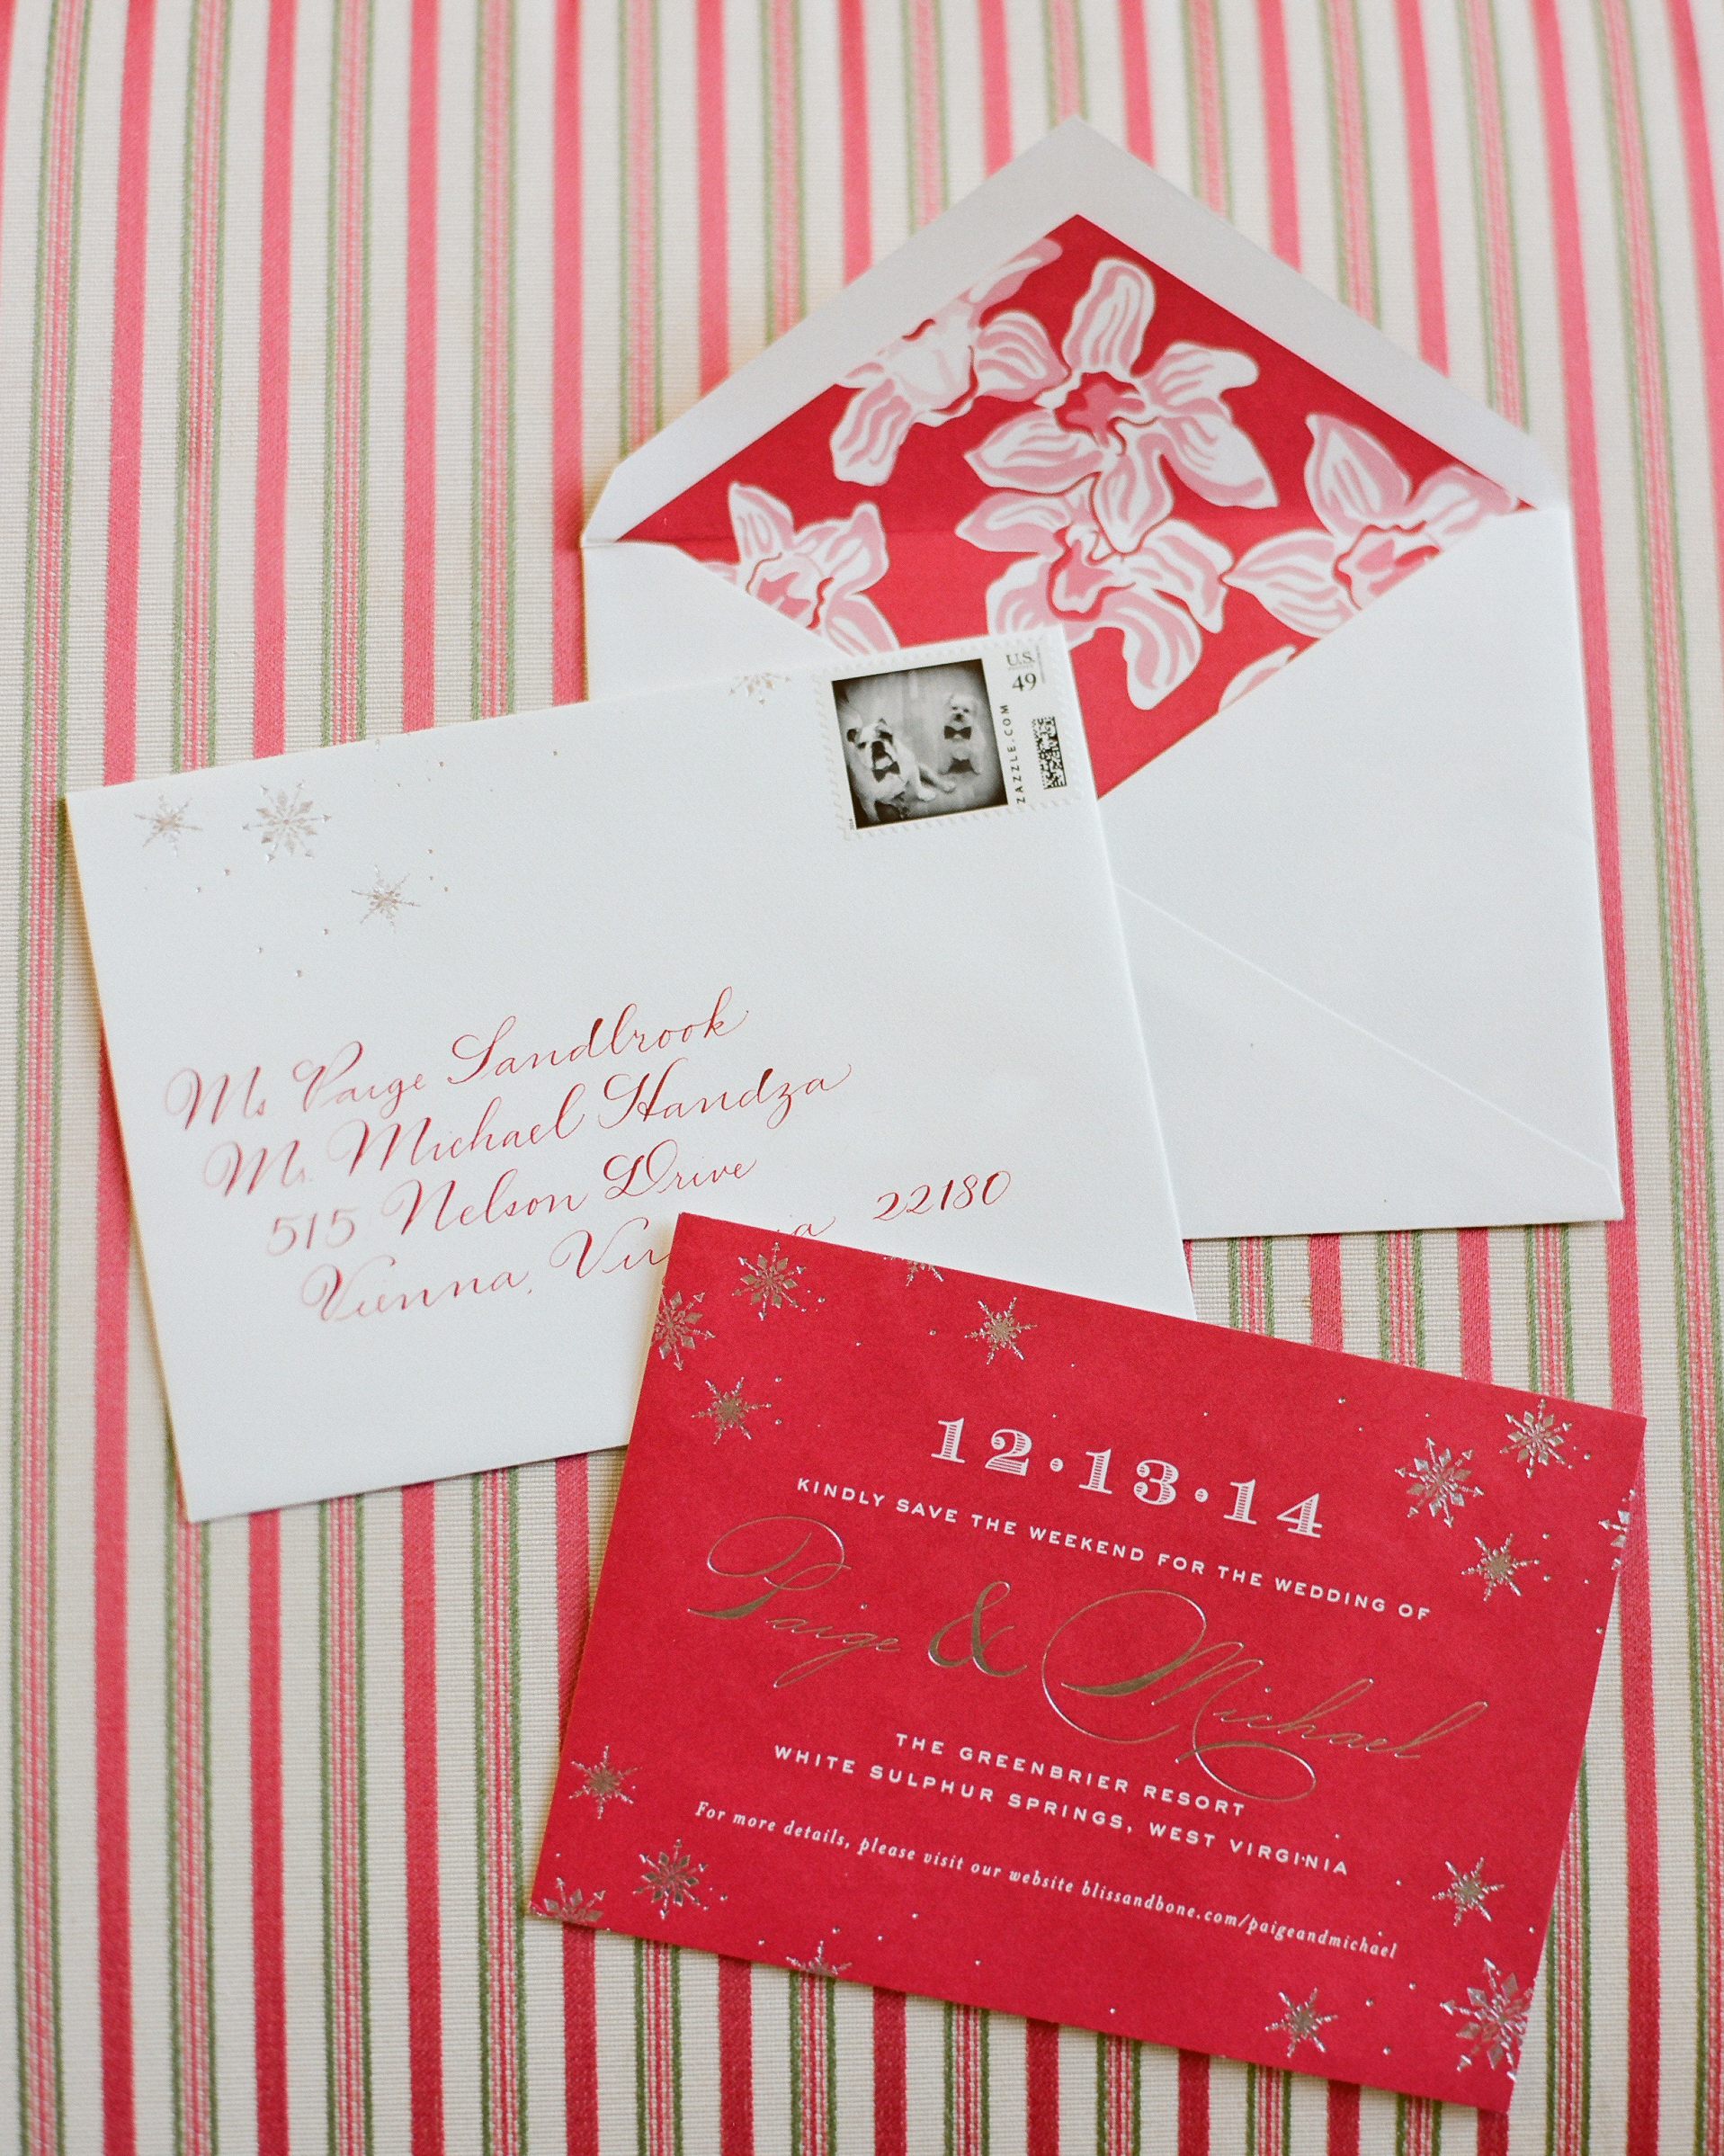 Festive Save-the-Dates